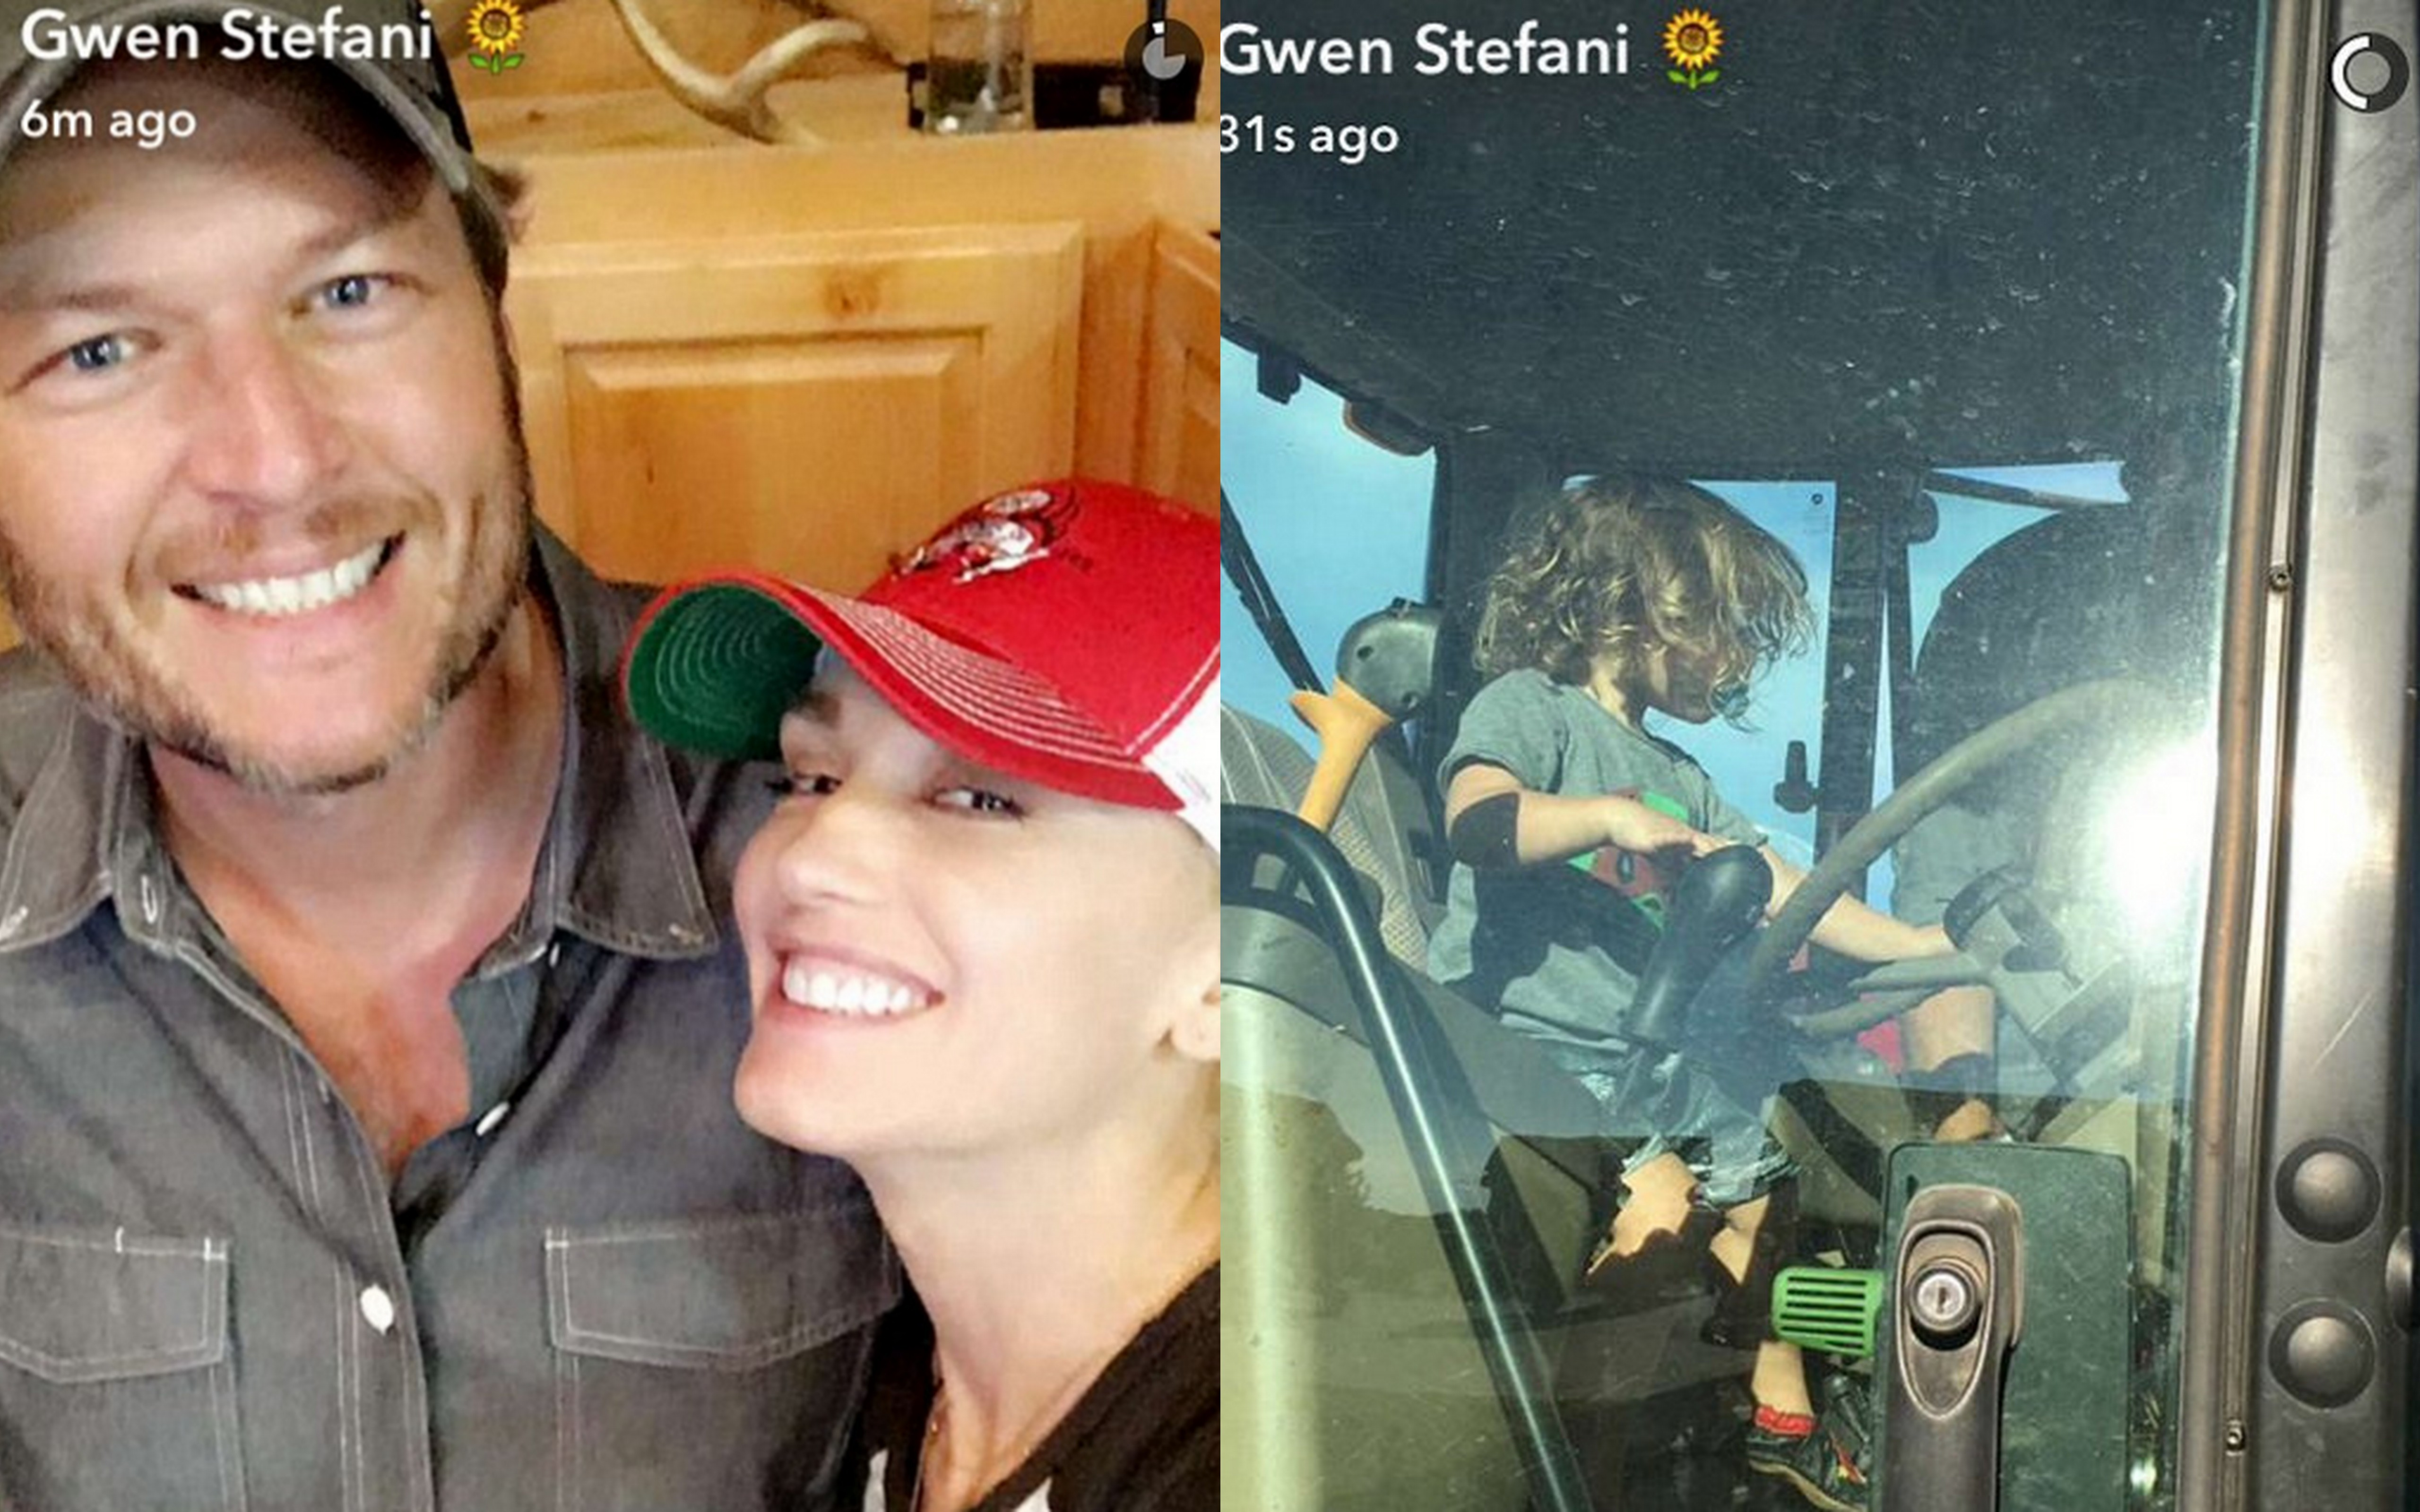 Gwen Stefani and her kids spend the day Blake Shelton's ranch